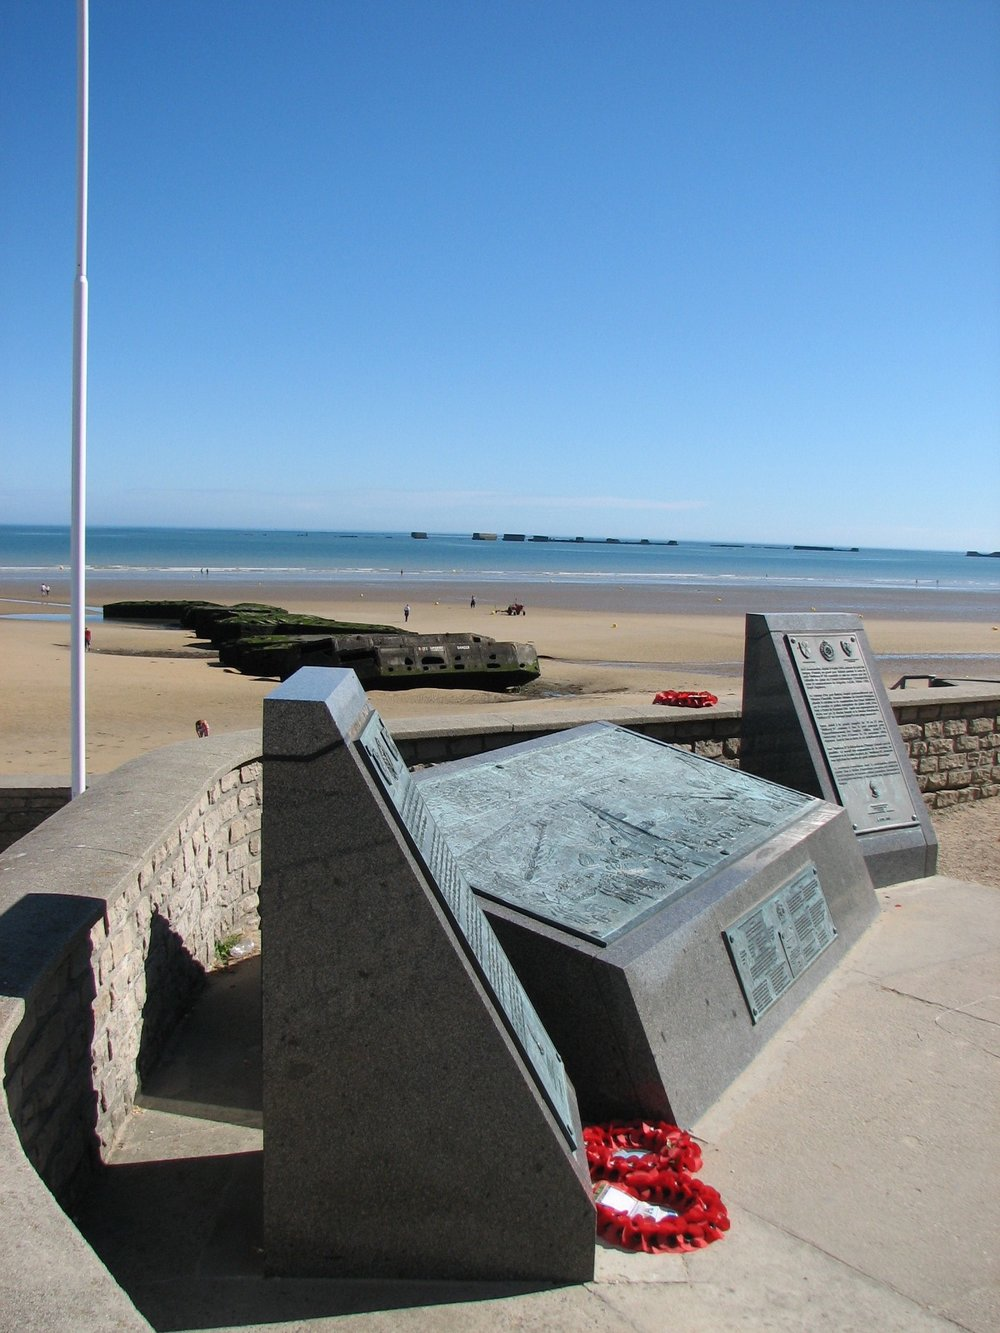 Memorial on the beach